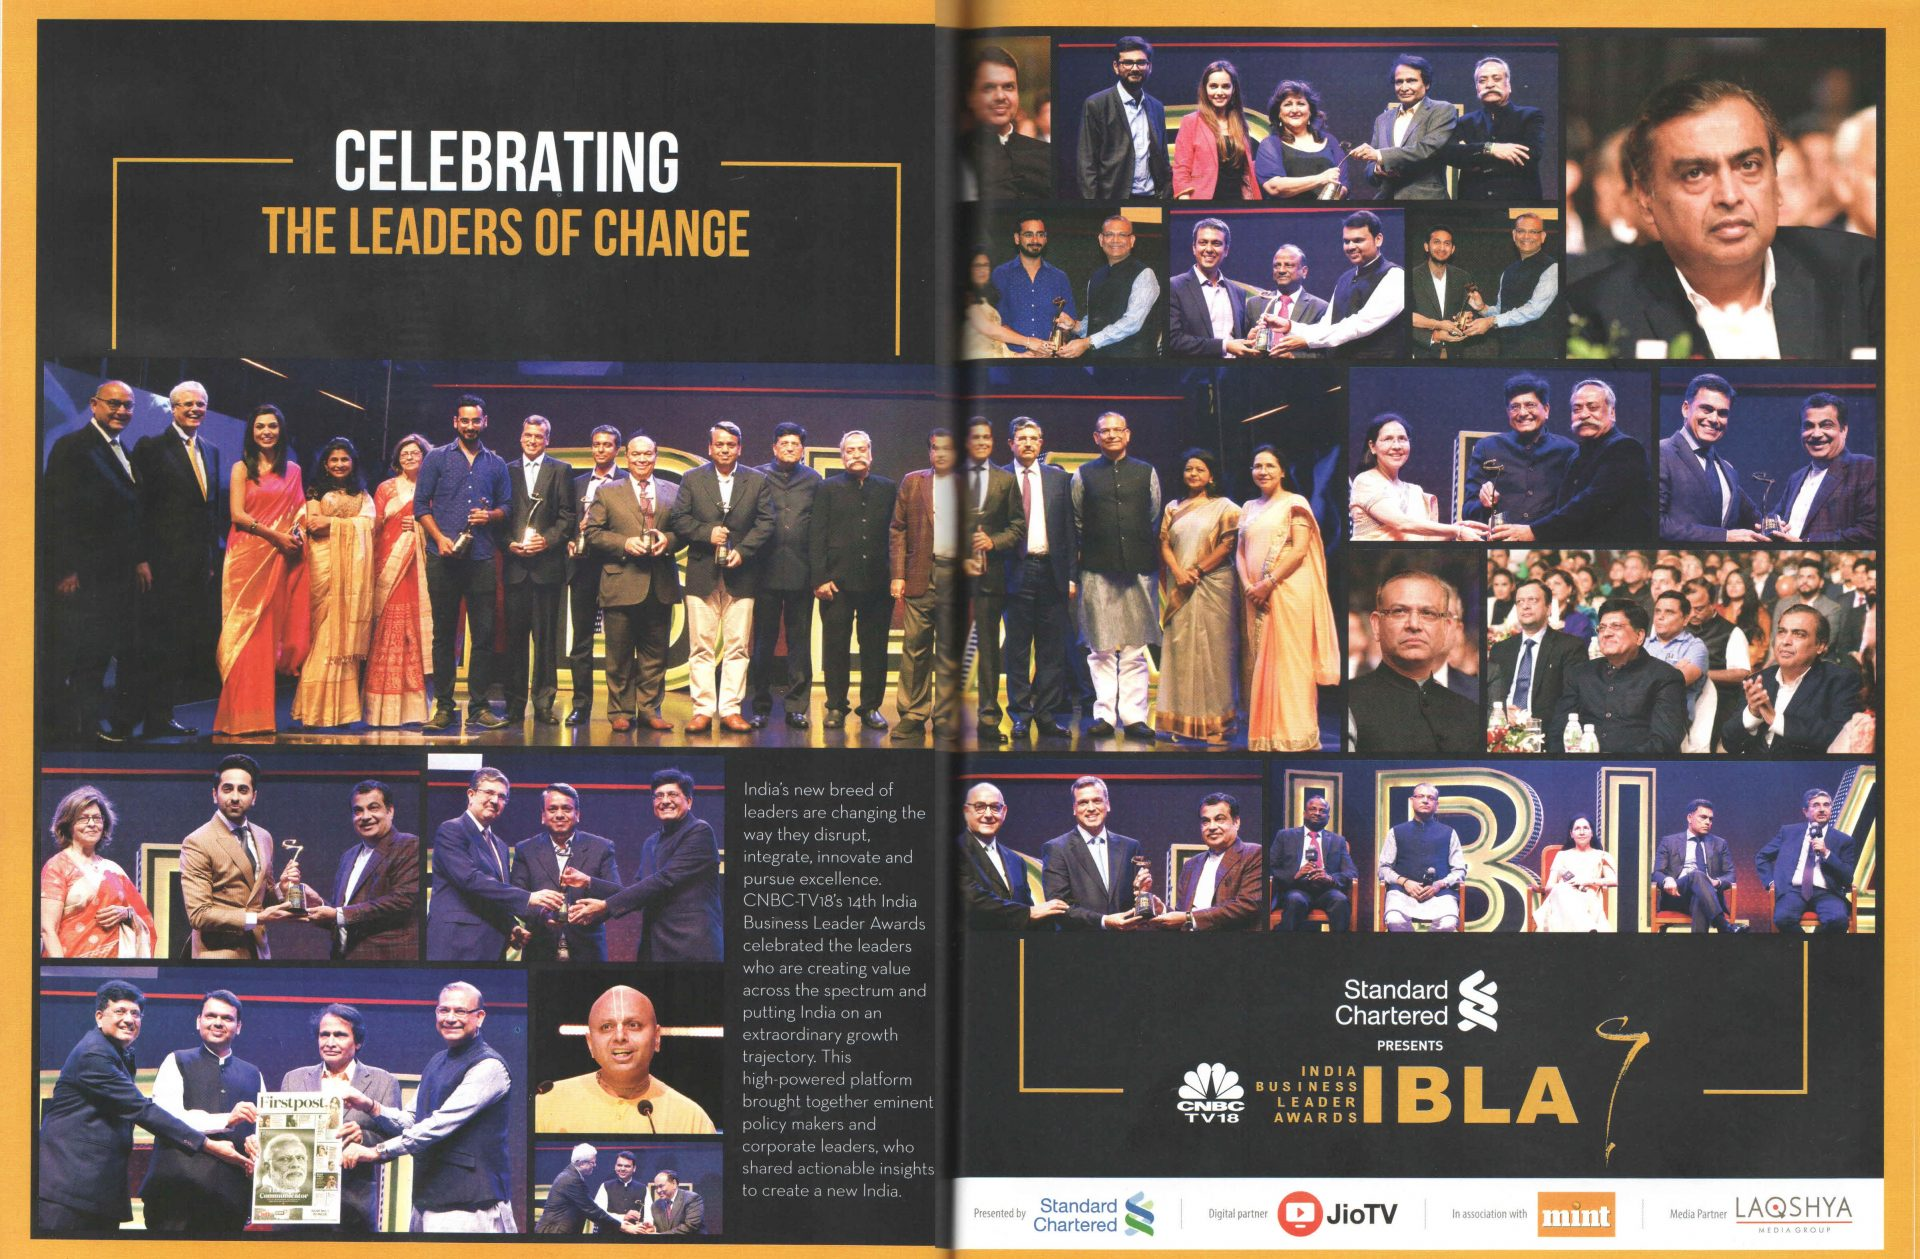 Spiritual Guru Gaur Gopal Das addressing the audience at IBLA Awards 2019